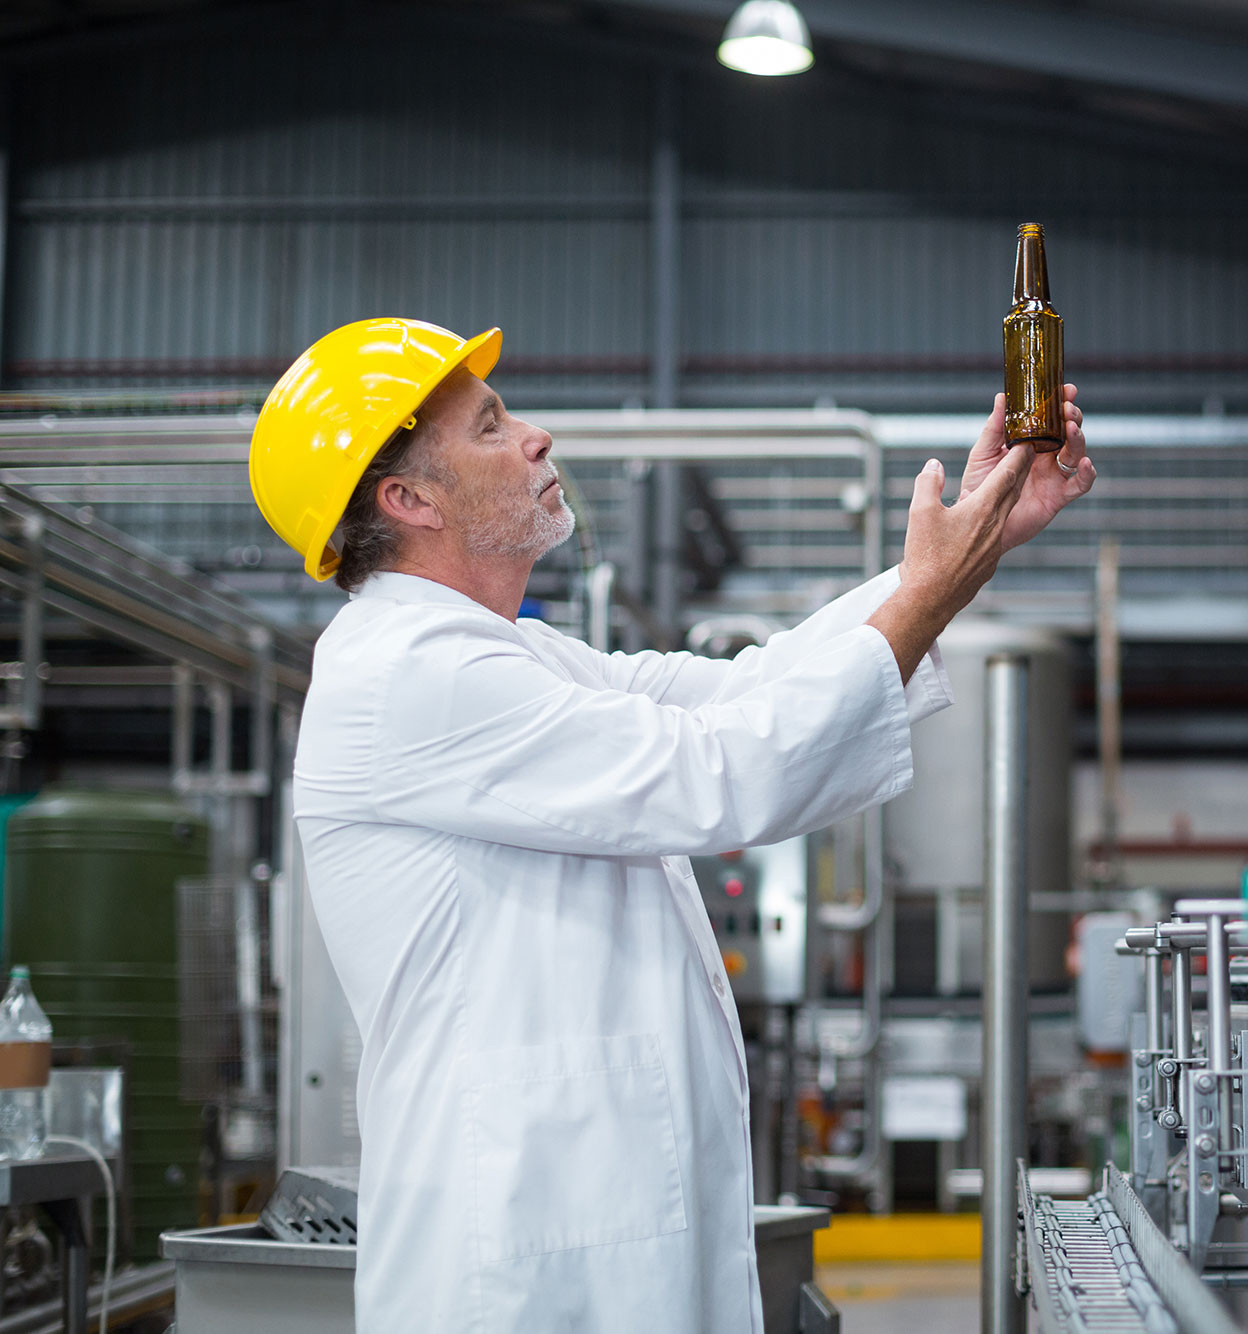 factory-worker-examining-a-bottle-in-factory-A38VZS9-2.jpg